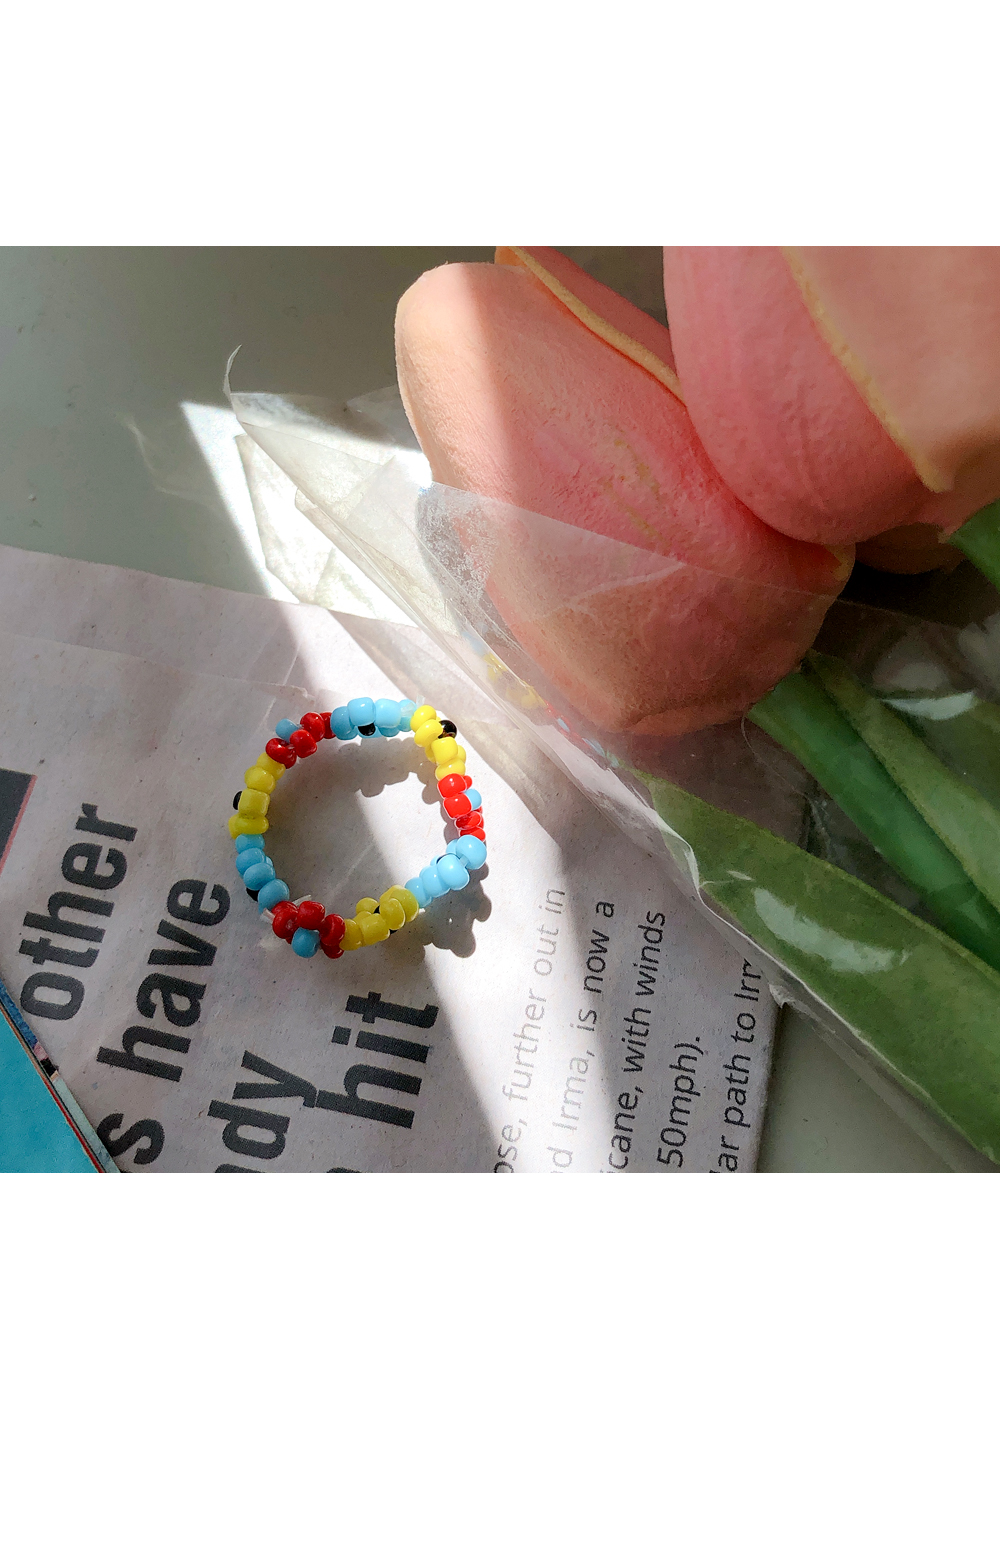 Hug ring with flowers